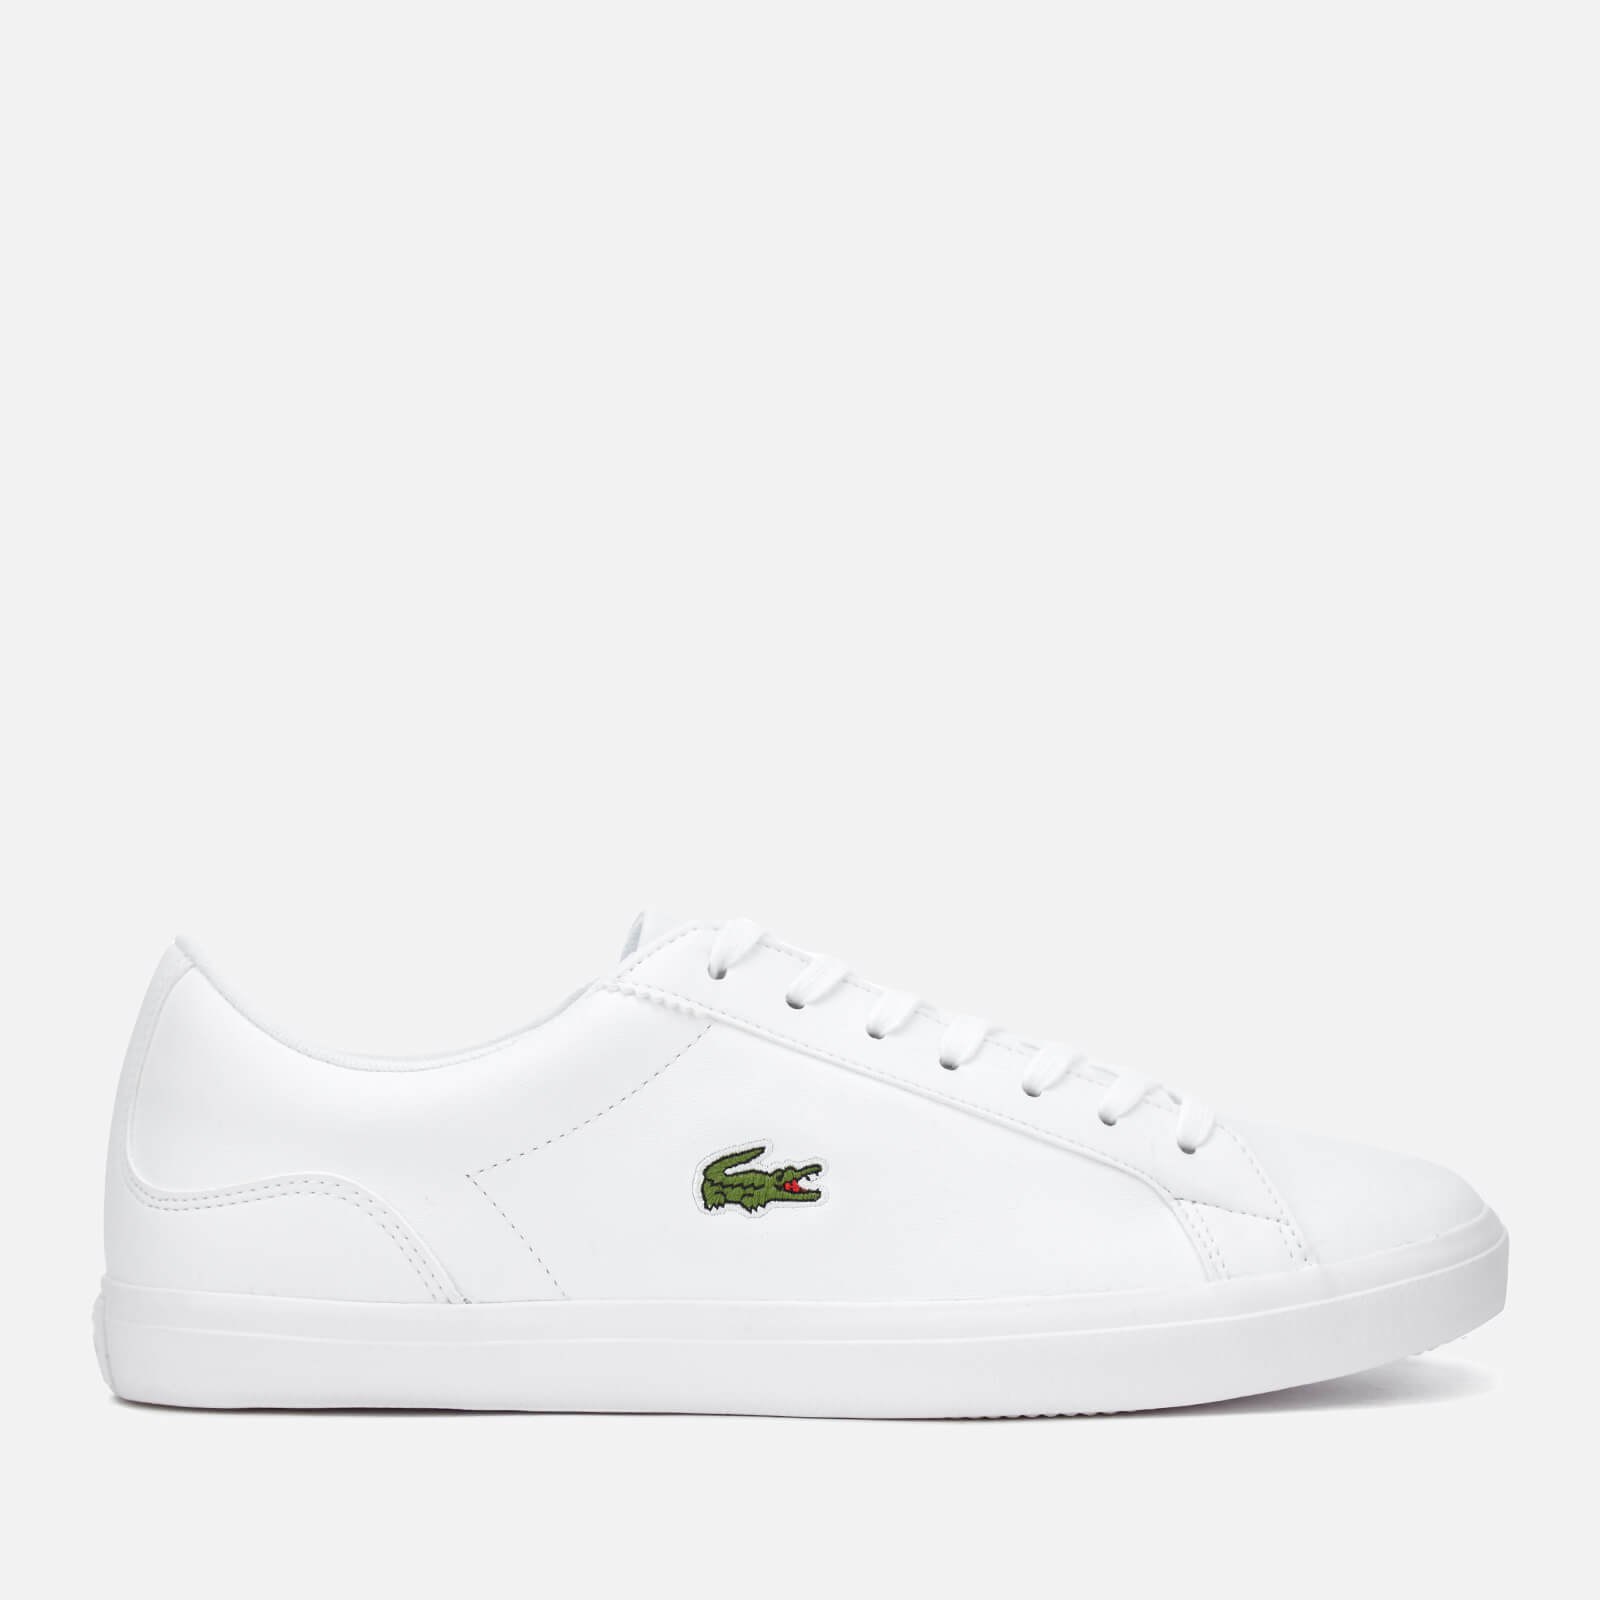 Lacoste Men's Lerond Bl 1 Leather Trainers - White - UK 7 - White